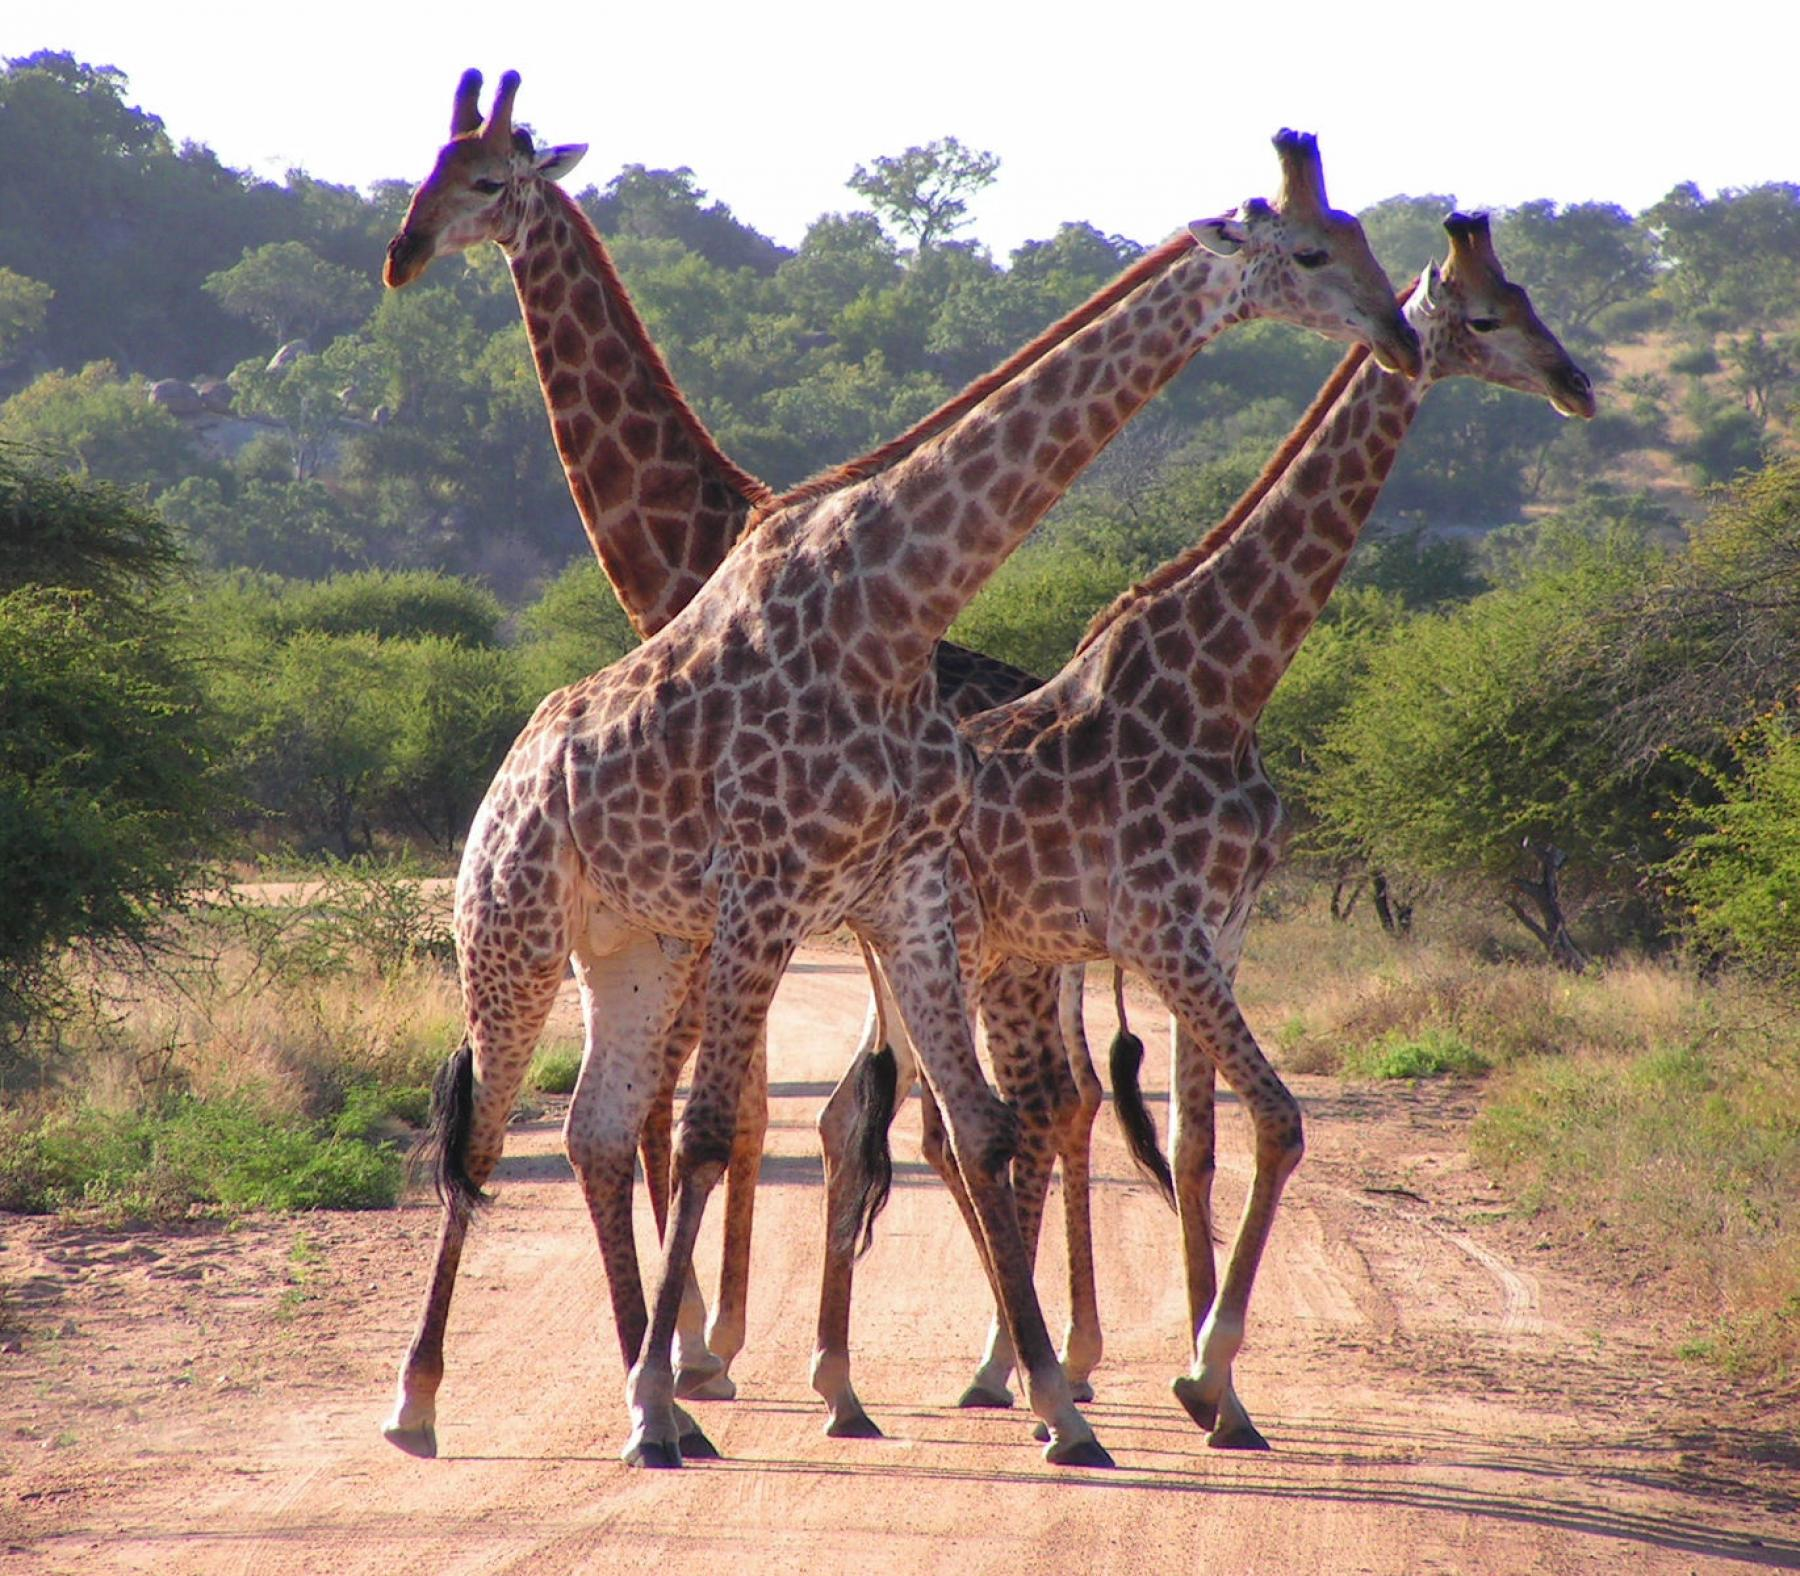 An Extraordinary African Safari and Adrenaline Excursion - 13D/12N Trip - Rerun starting at Johannesburg, Gauteng, South Africa